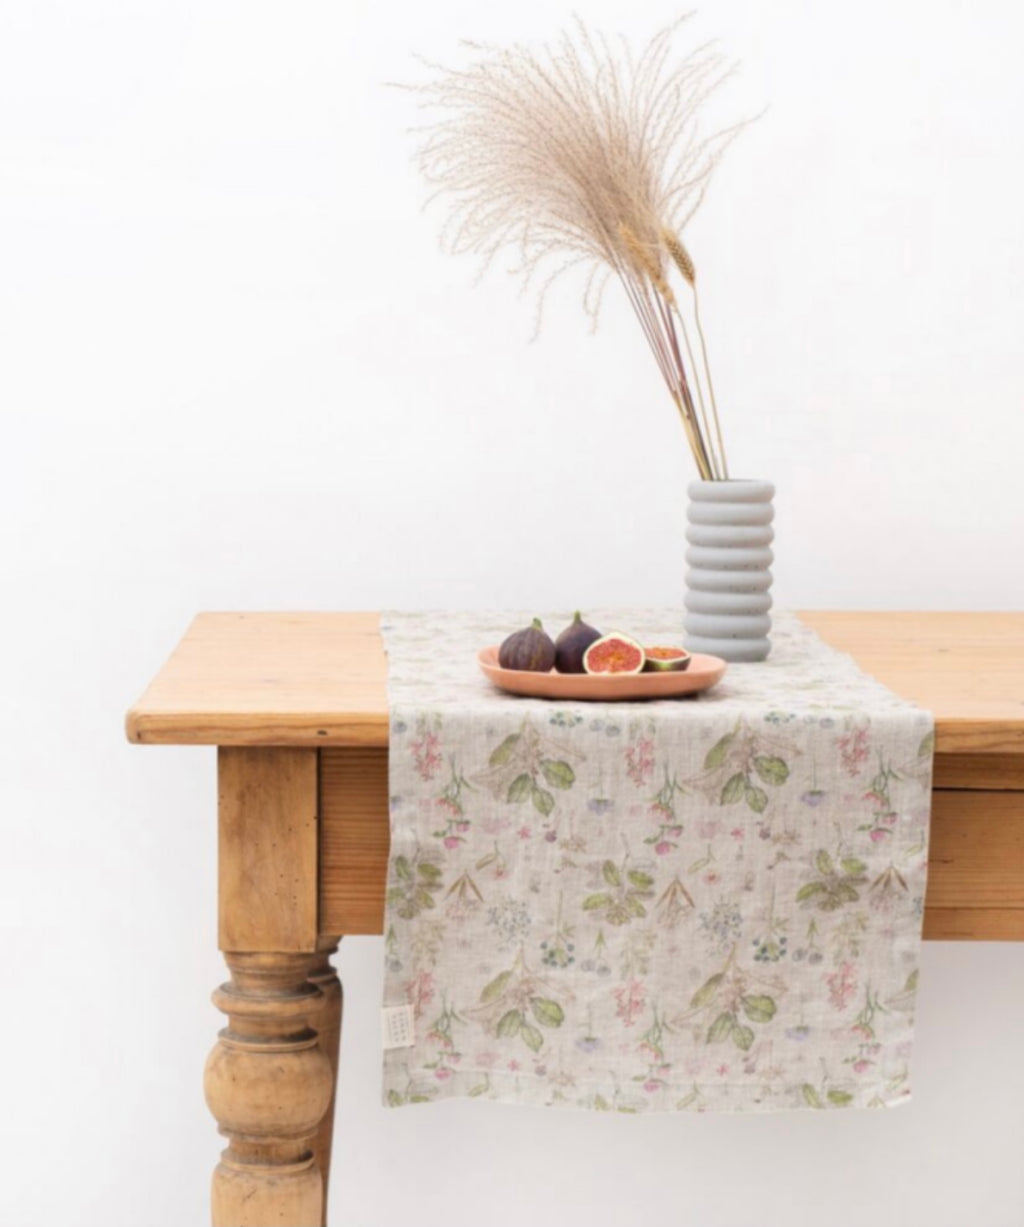 Botany Washed Linen Table Runner 2 SIZES